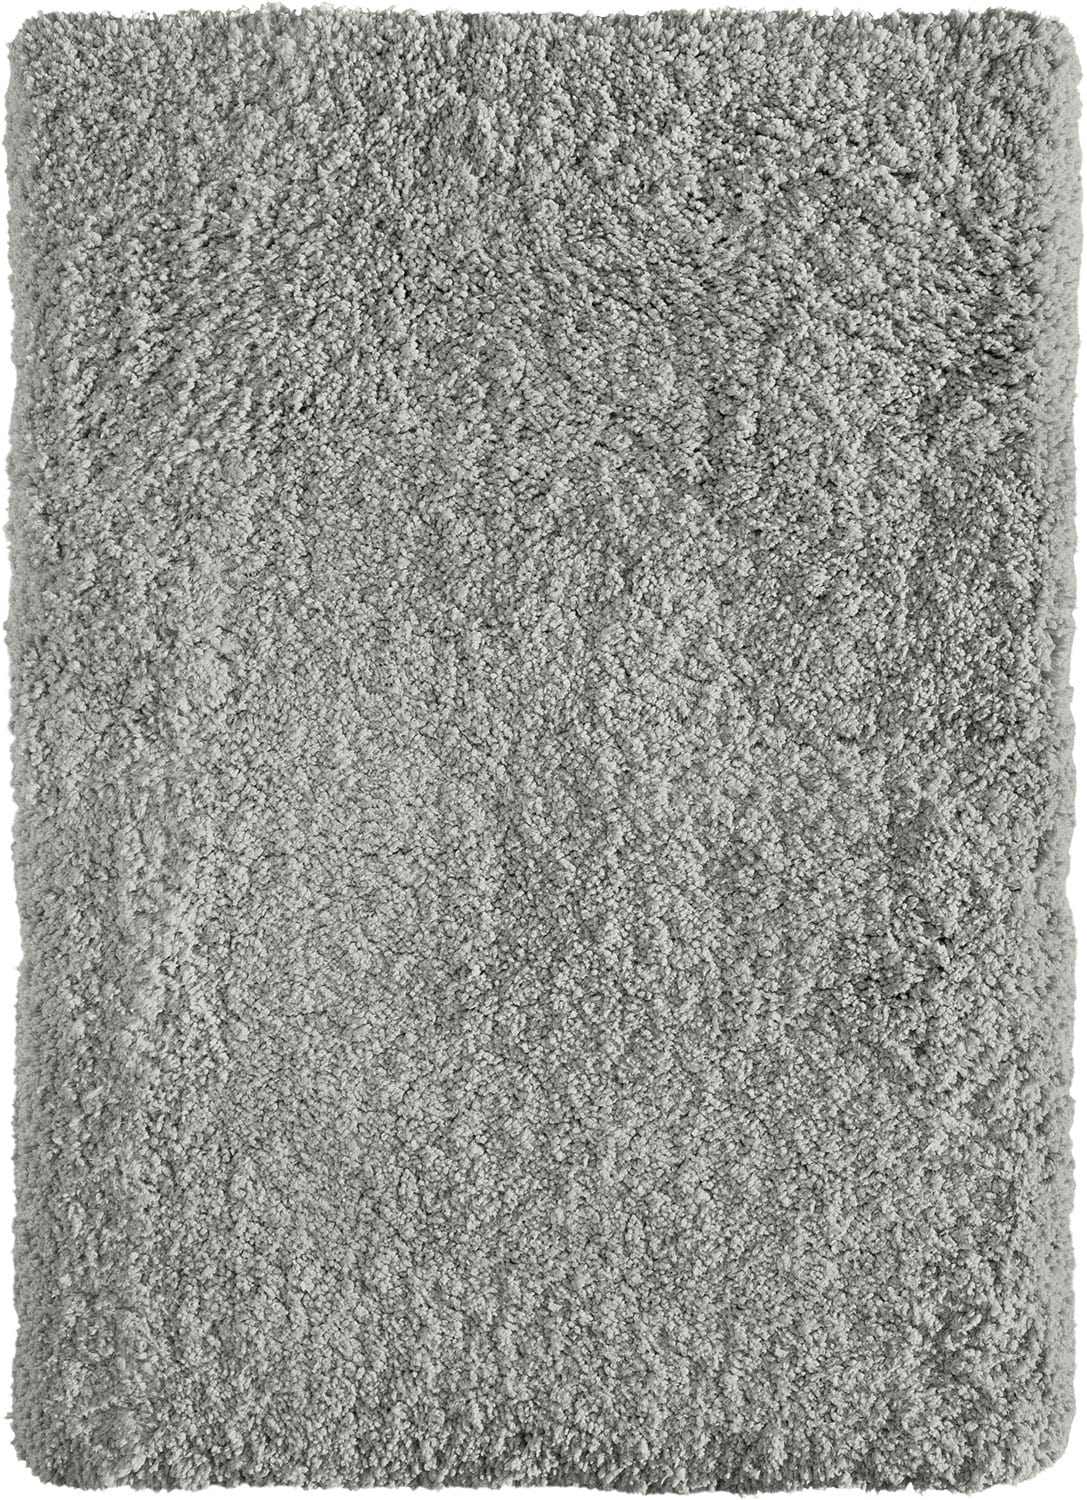 Alpaca Light Beige Area Rug – 8' x 10'